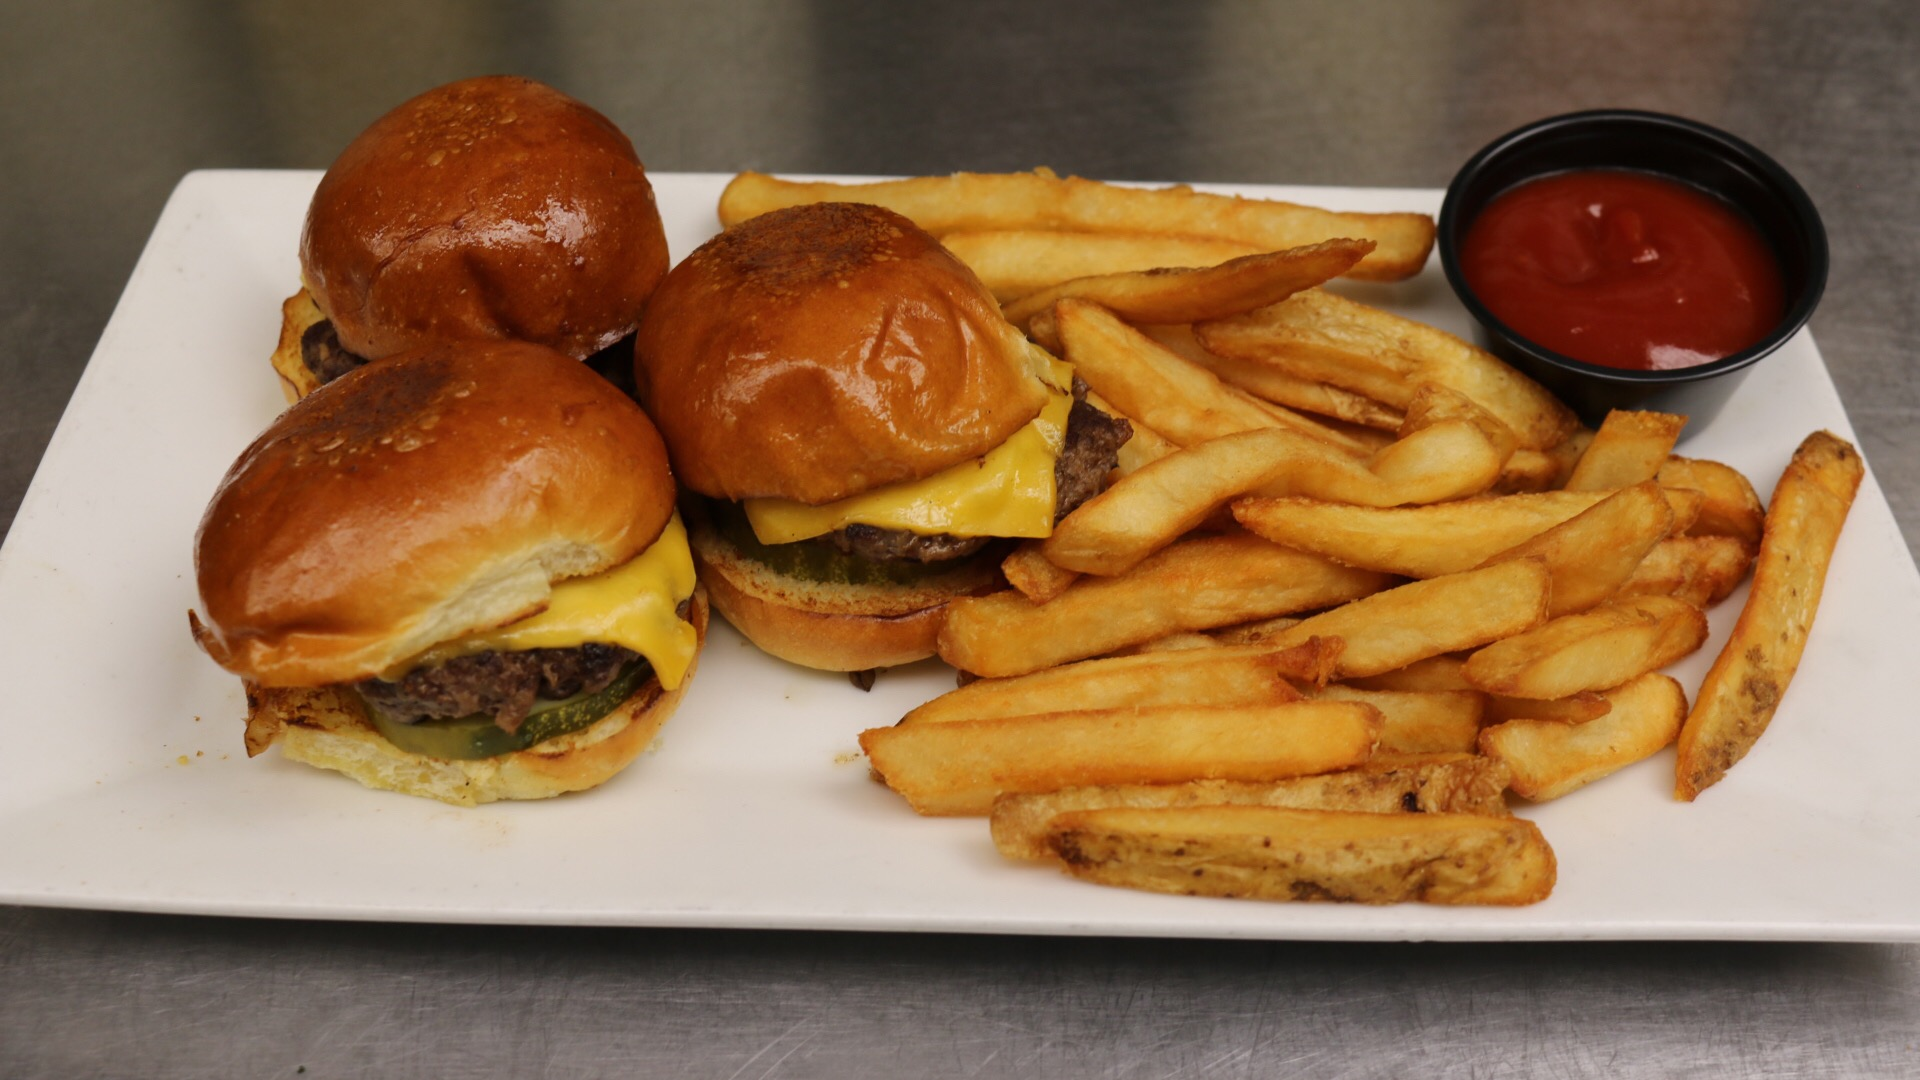 3 cheeseburger sliders with french fries and a side of ketchup